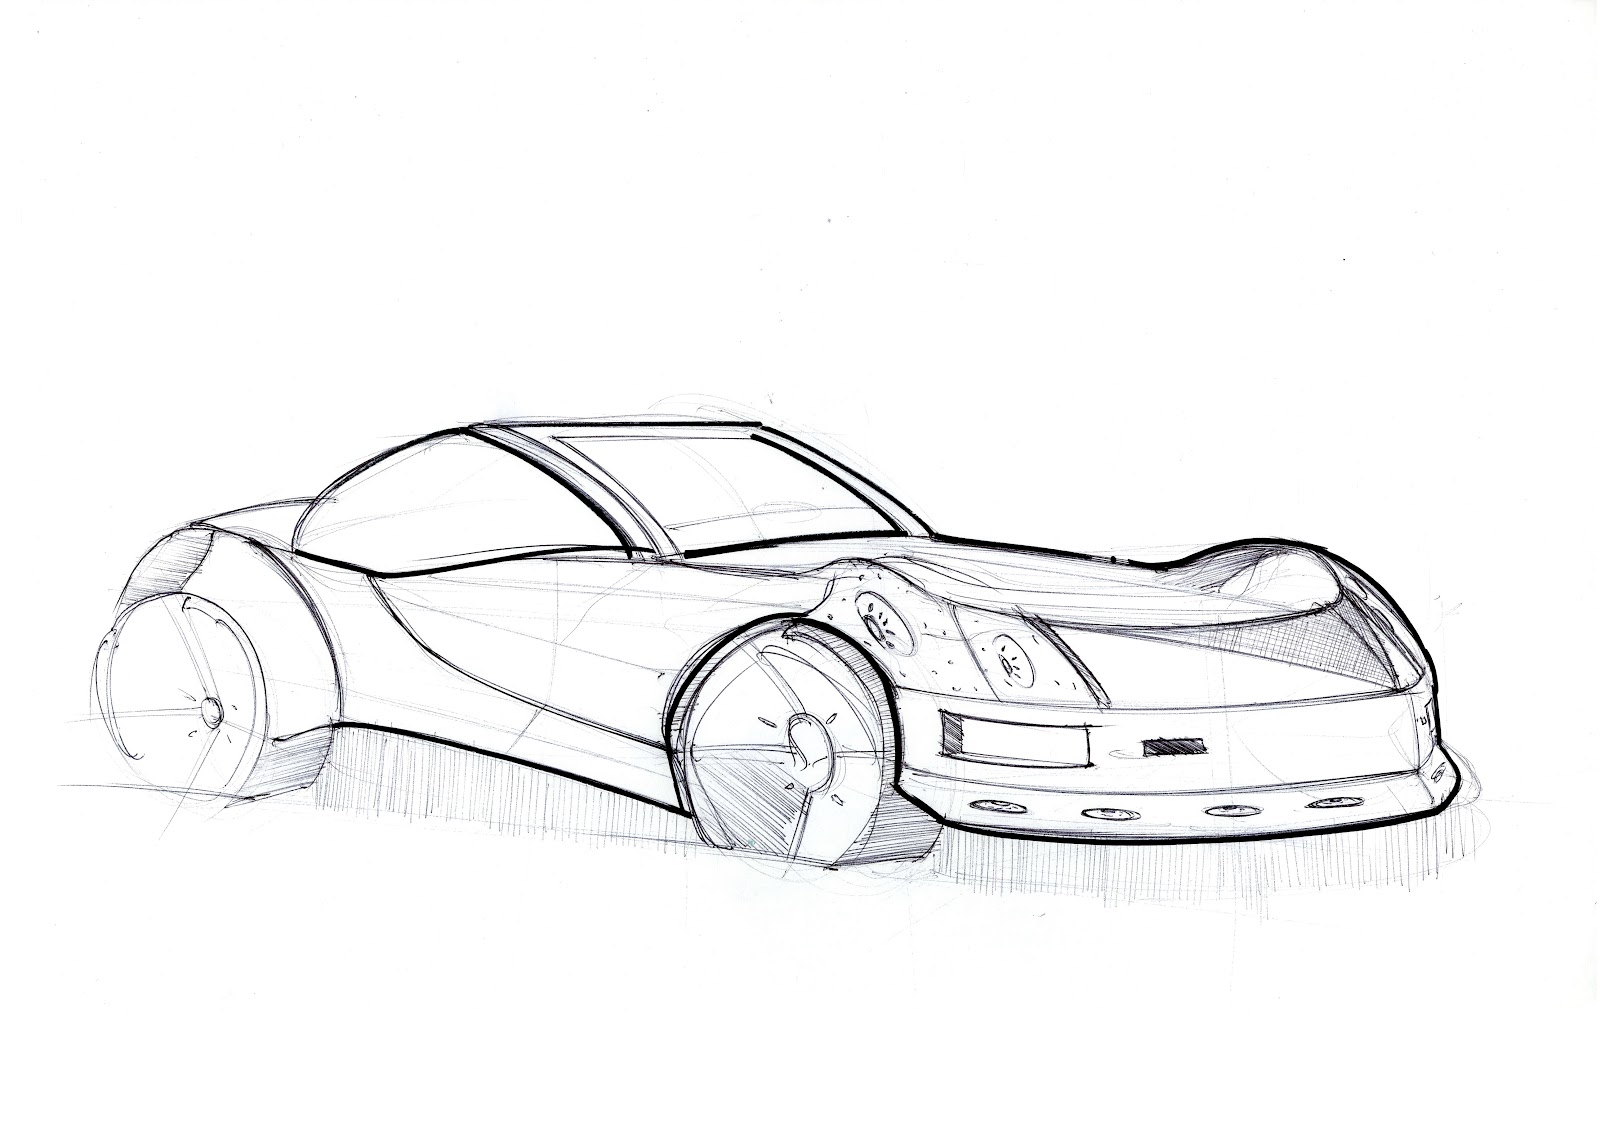 Sketches N\' Things: Car Sketches